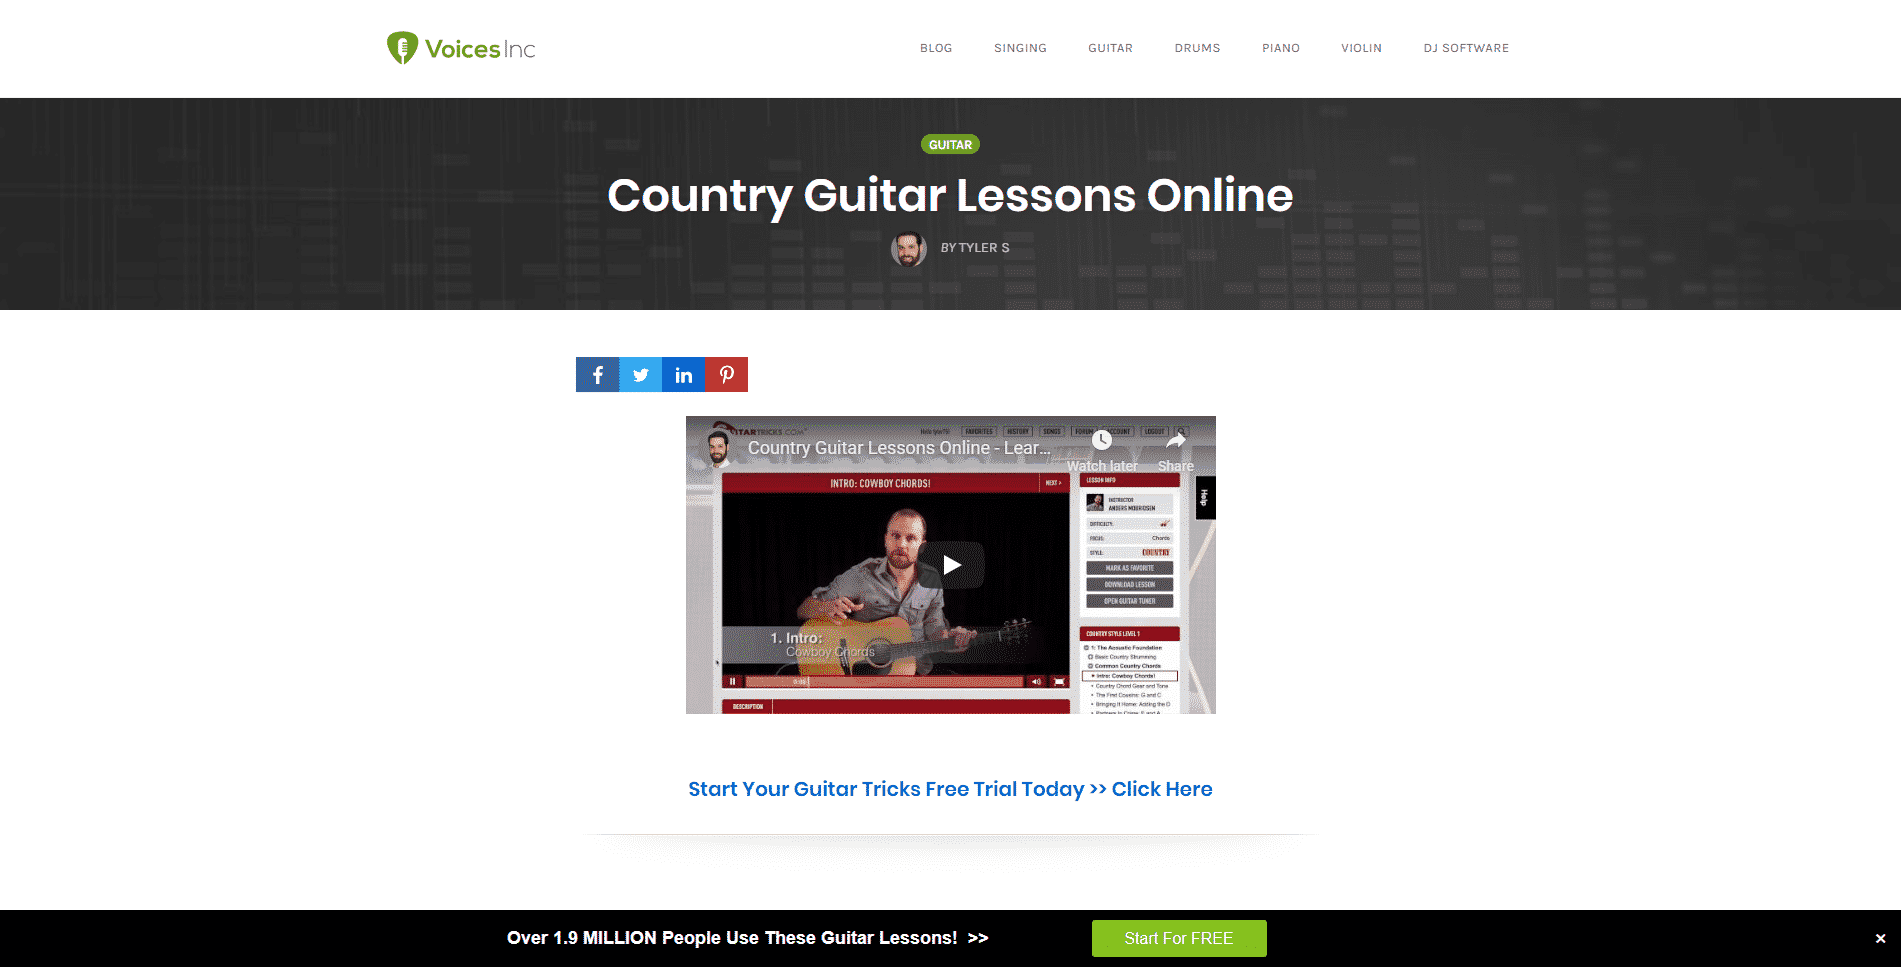 Voice Inc. – Country Guitar Lessons Online